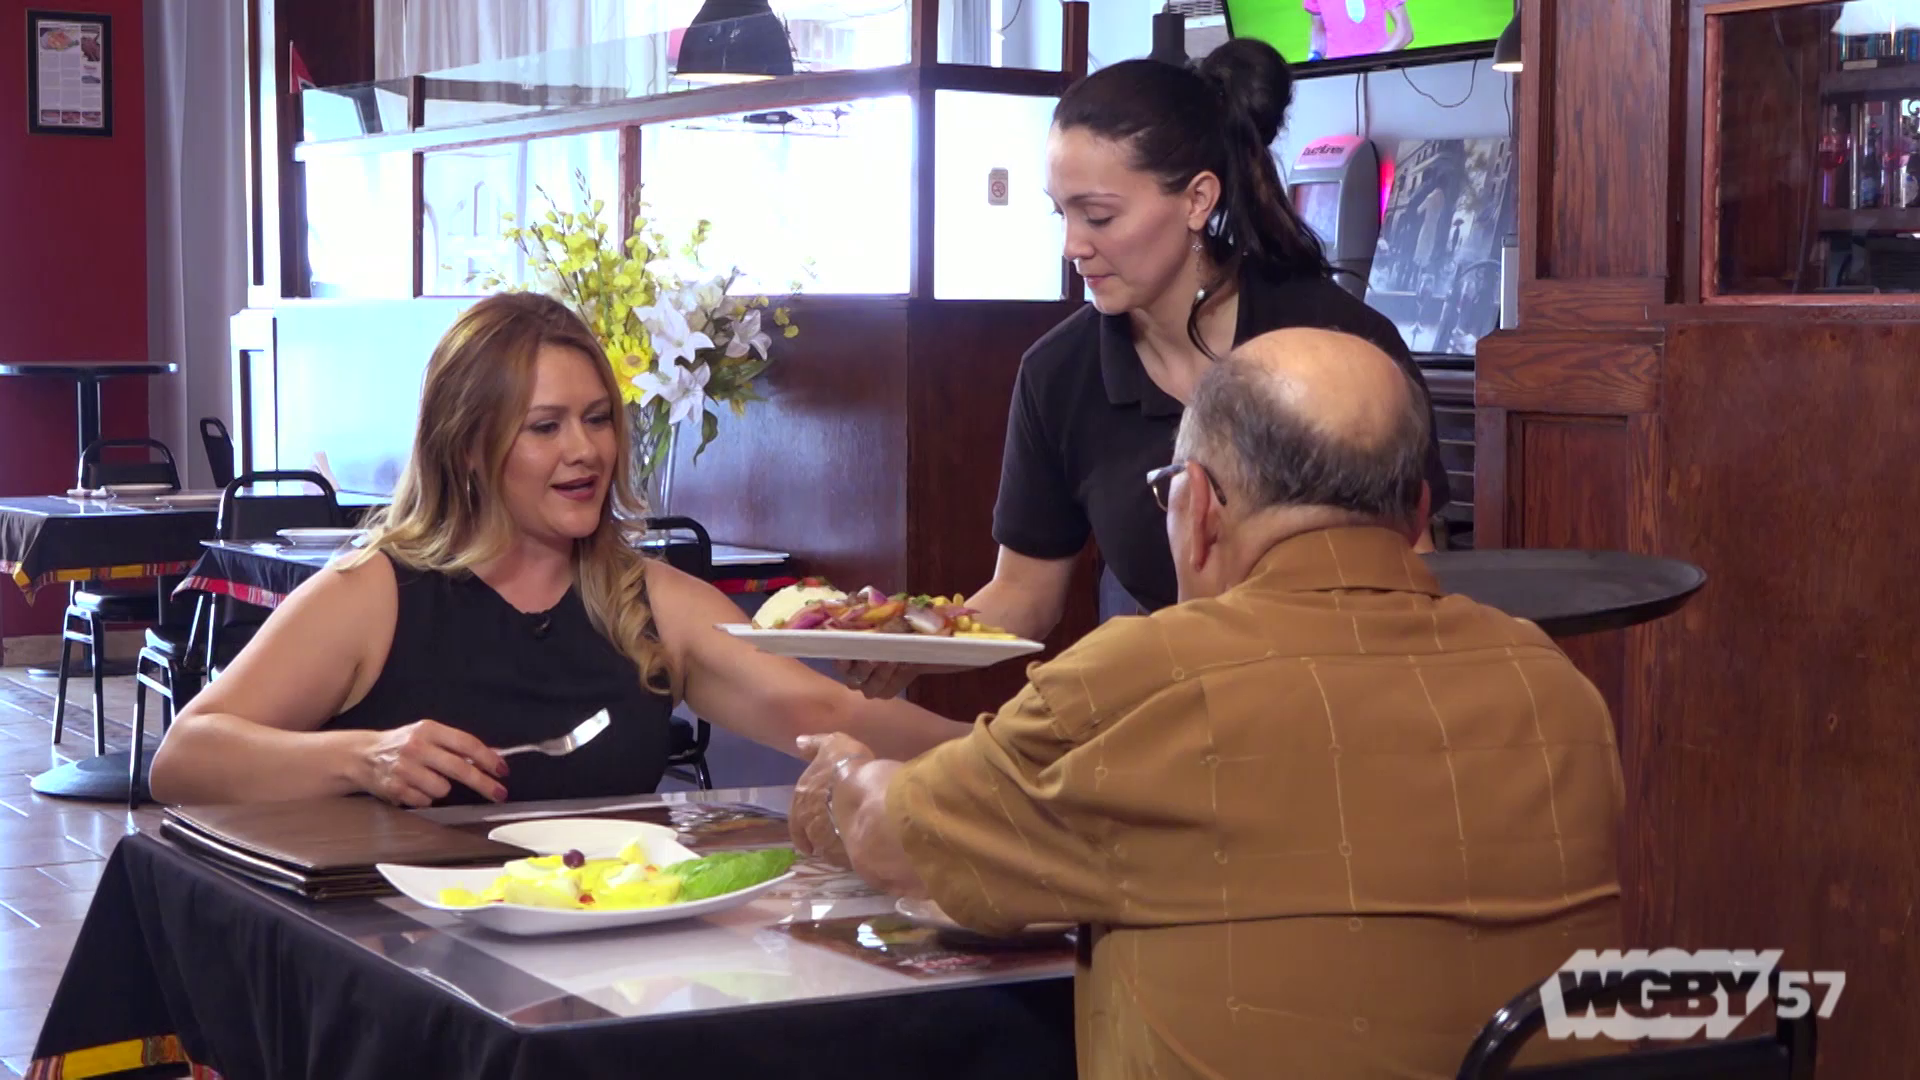 Get an authentic taste of Peru at the Hartford restaurant Piolin, where this family-owned business offers an authentic Peruvian culinary experience.